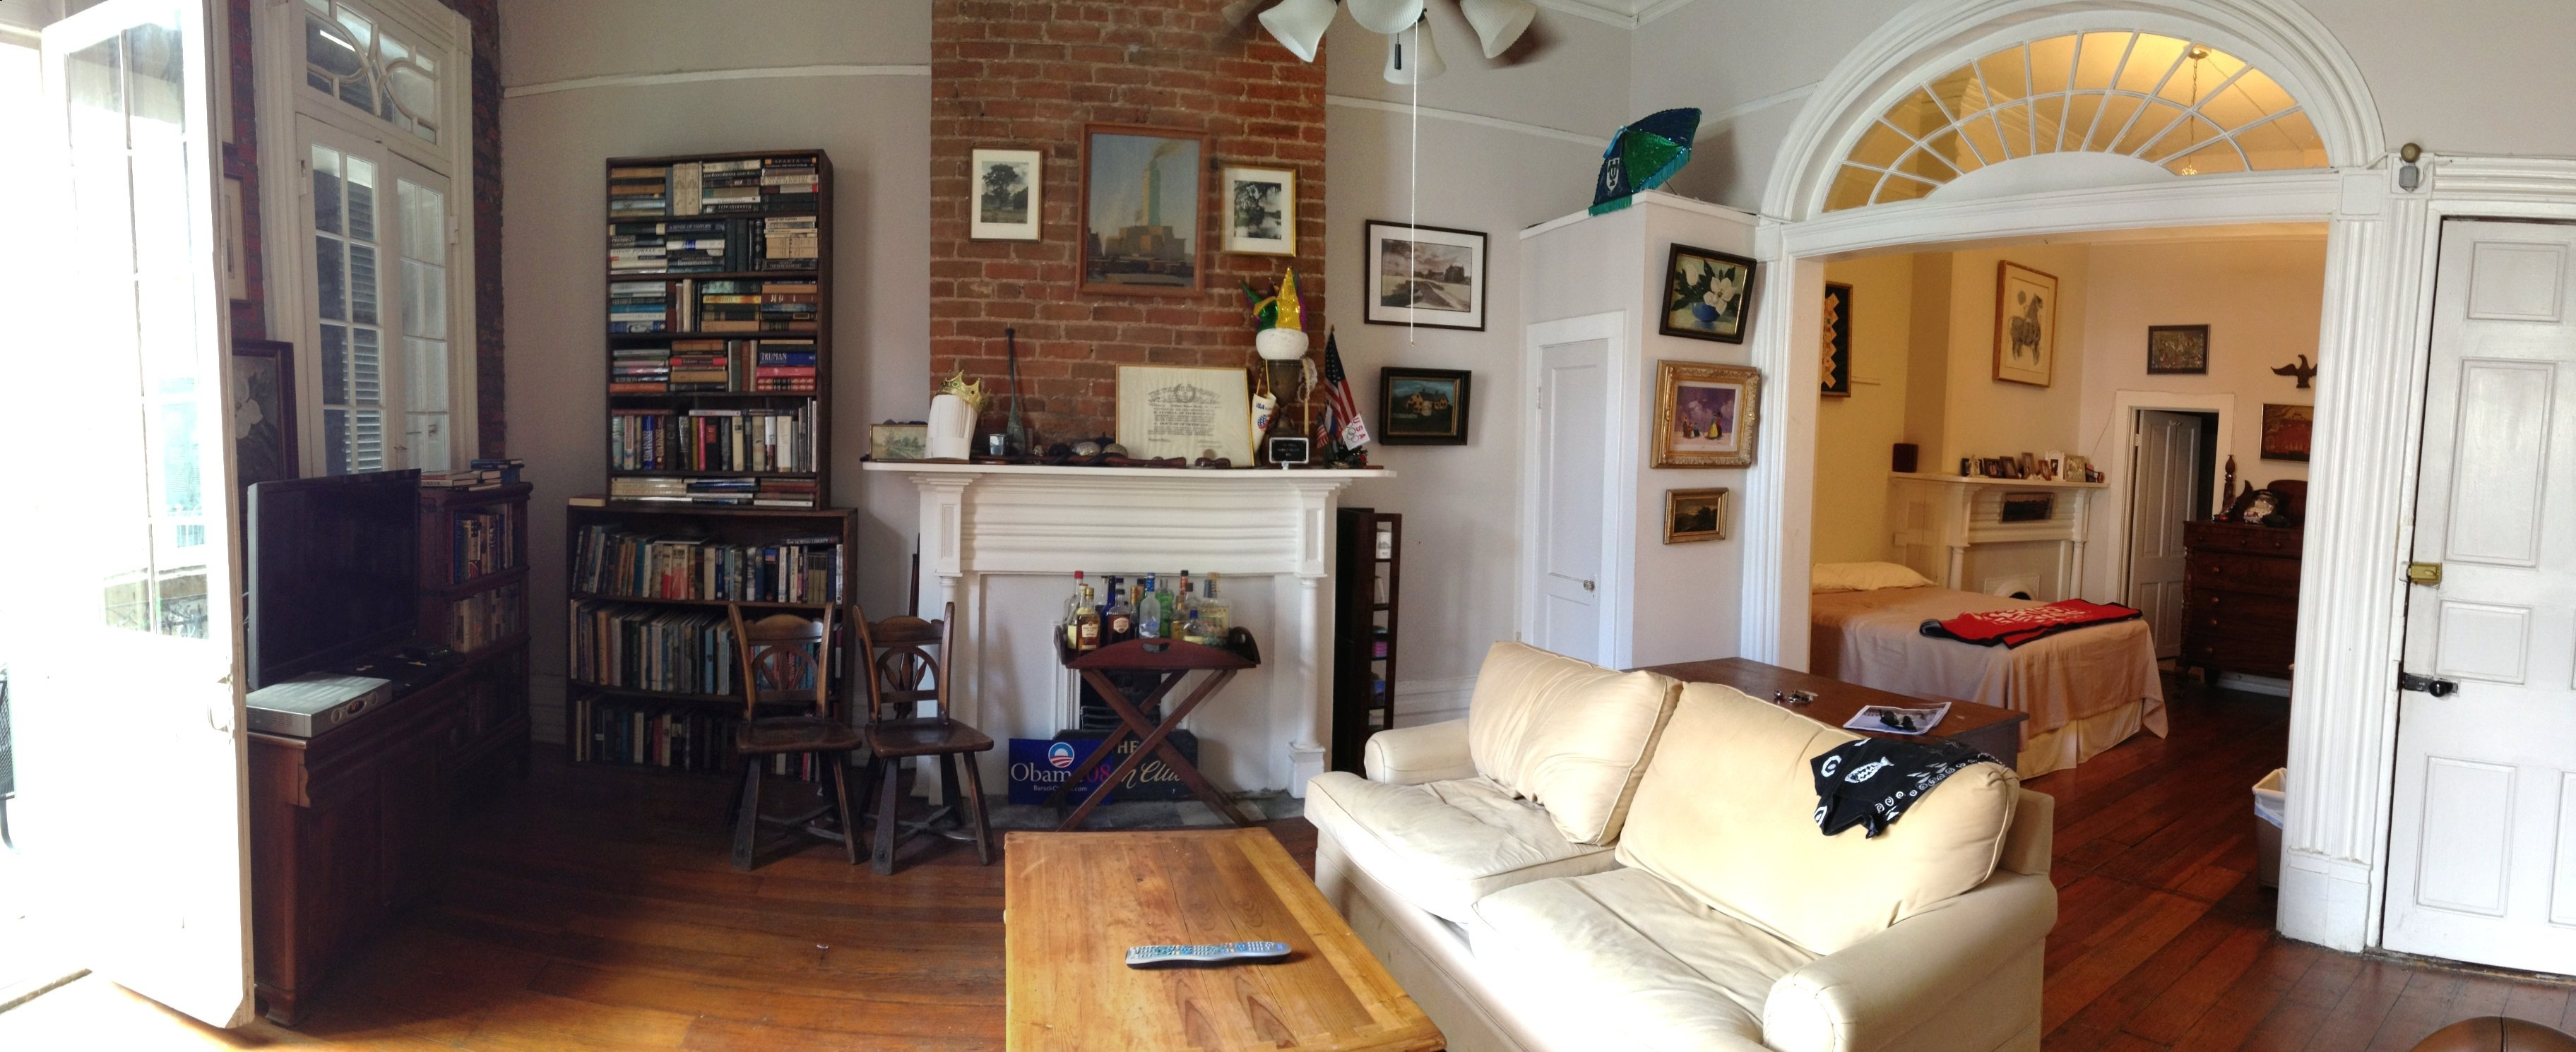 Superb File:New Orleans French Quarter Apartment Living Room